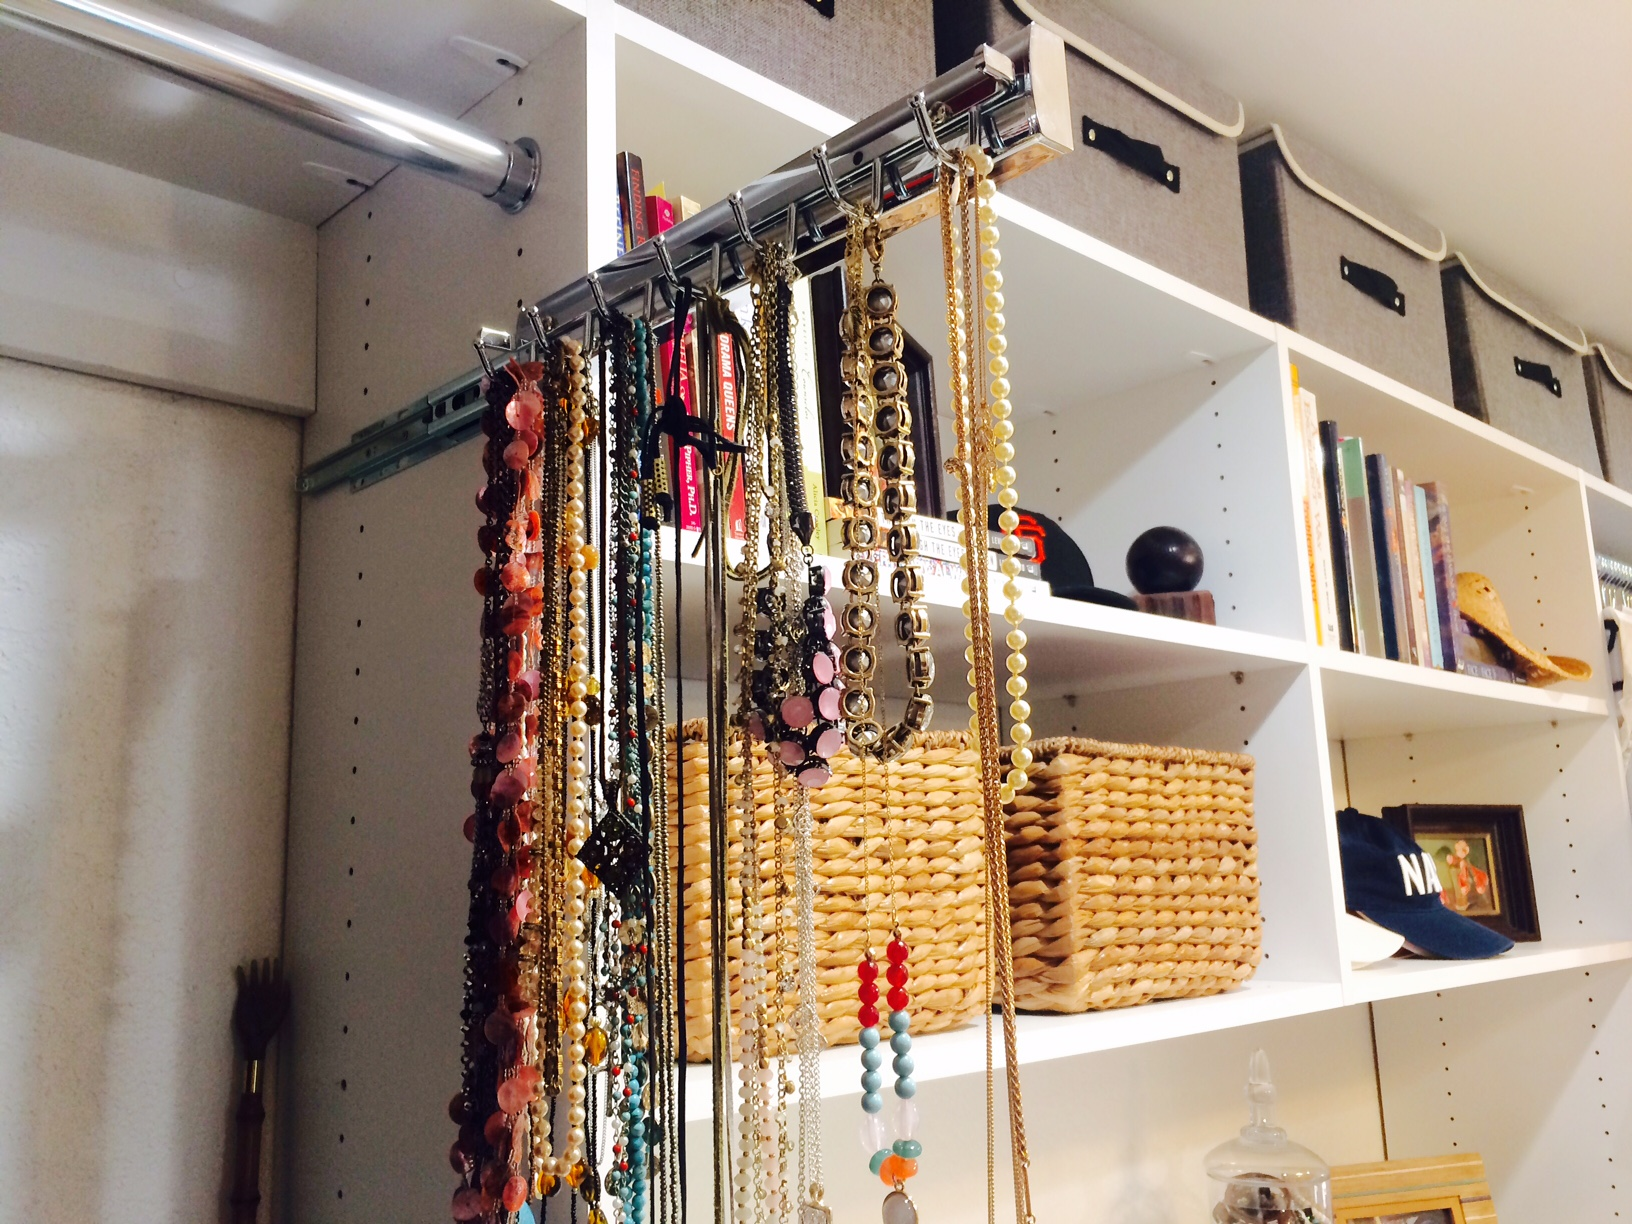 This sliding belt rack by Closets of Tulsa doubles as a clutter-busting jewelry organizer.  Call now  for a FREE consultation and 3-D closet design:  918.609.0214